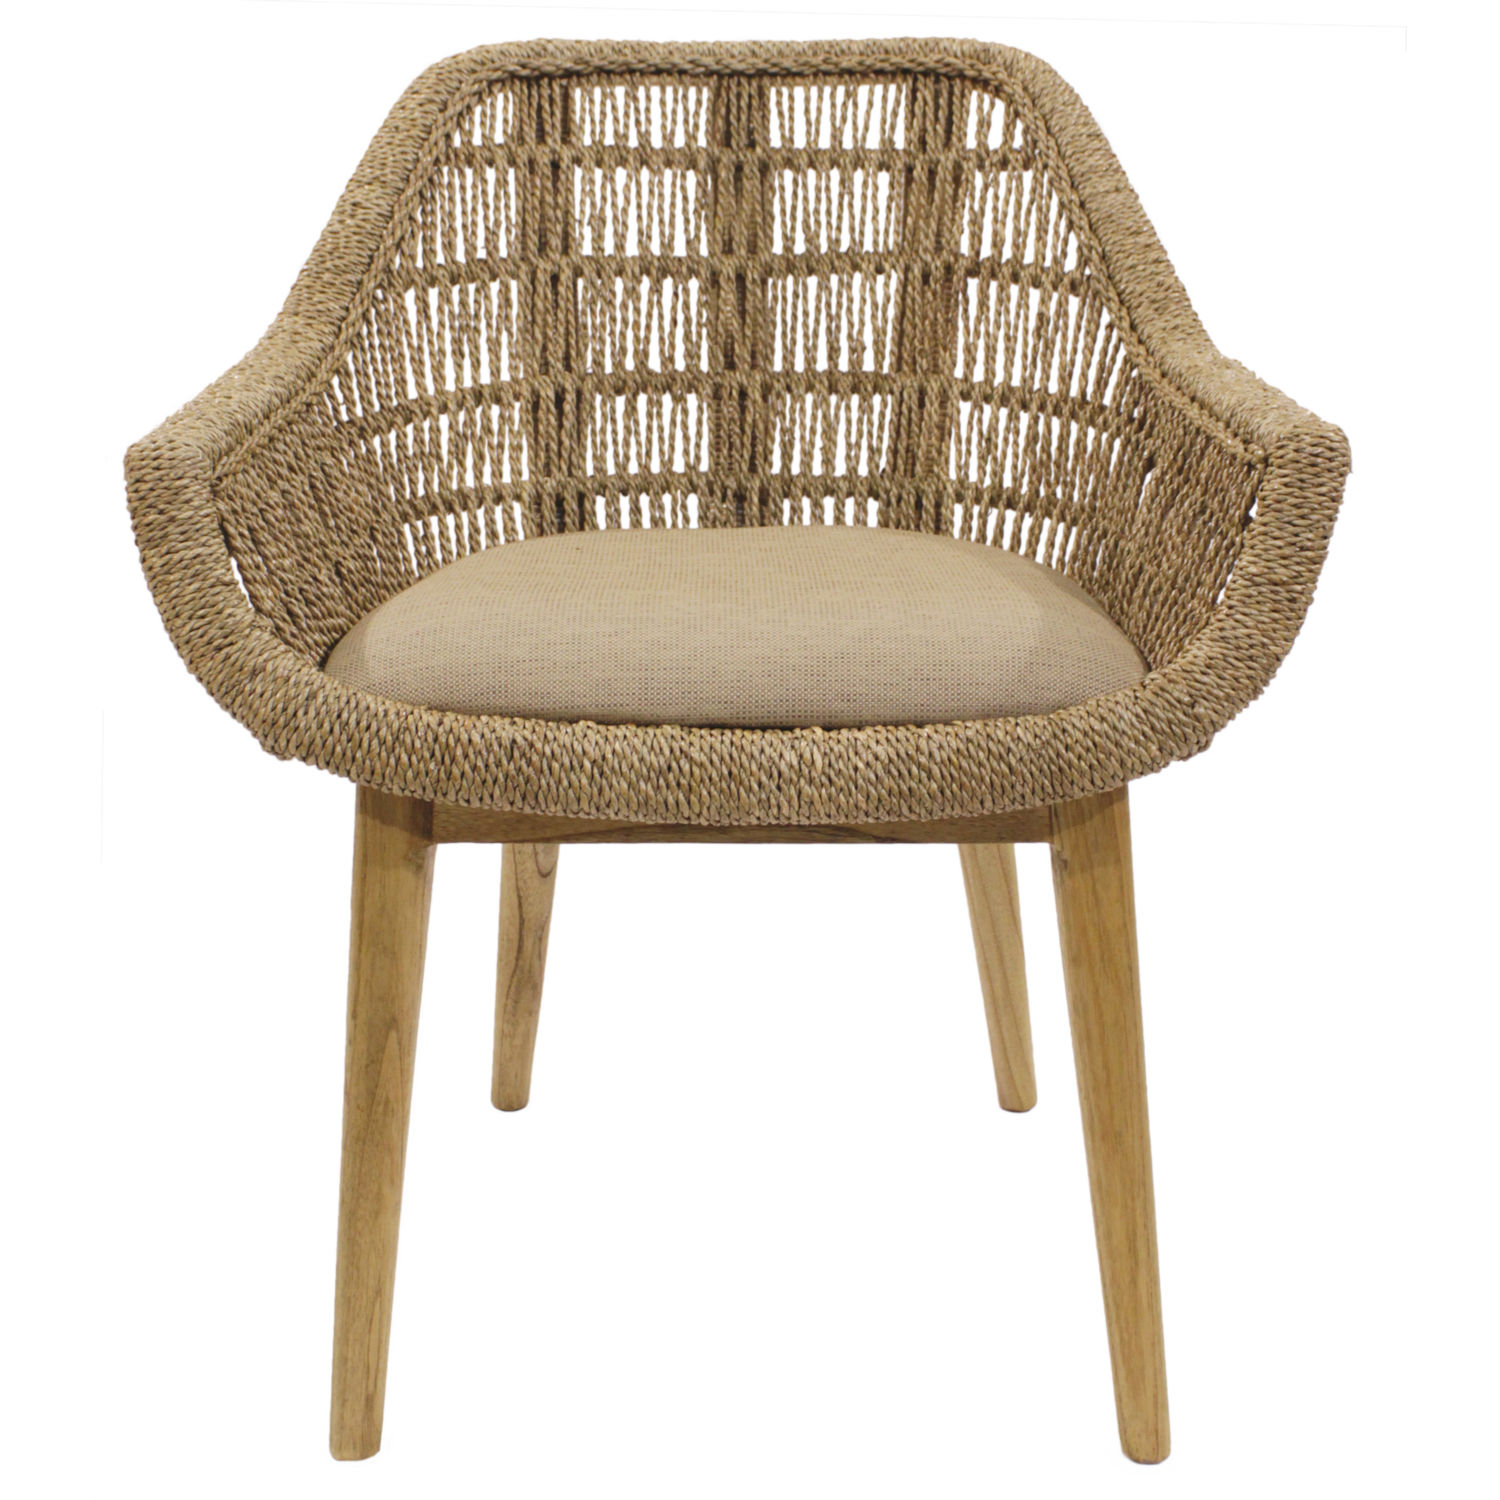 Seagrass Dining Chair Leia Dining Chair In Natural Seagrass Rattan By New Pacific Direct